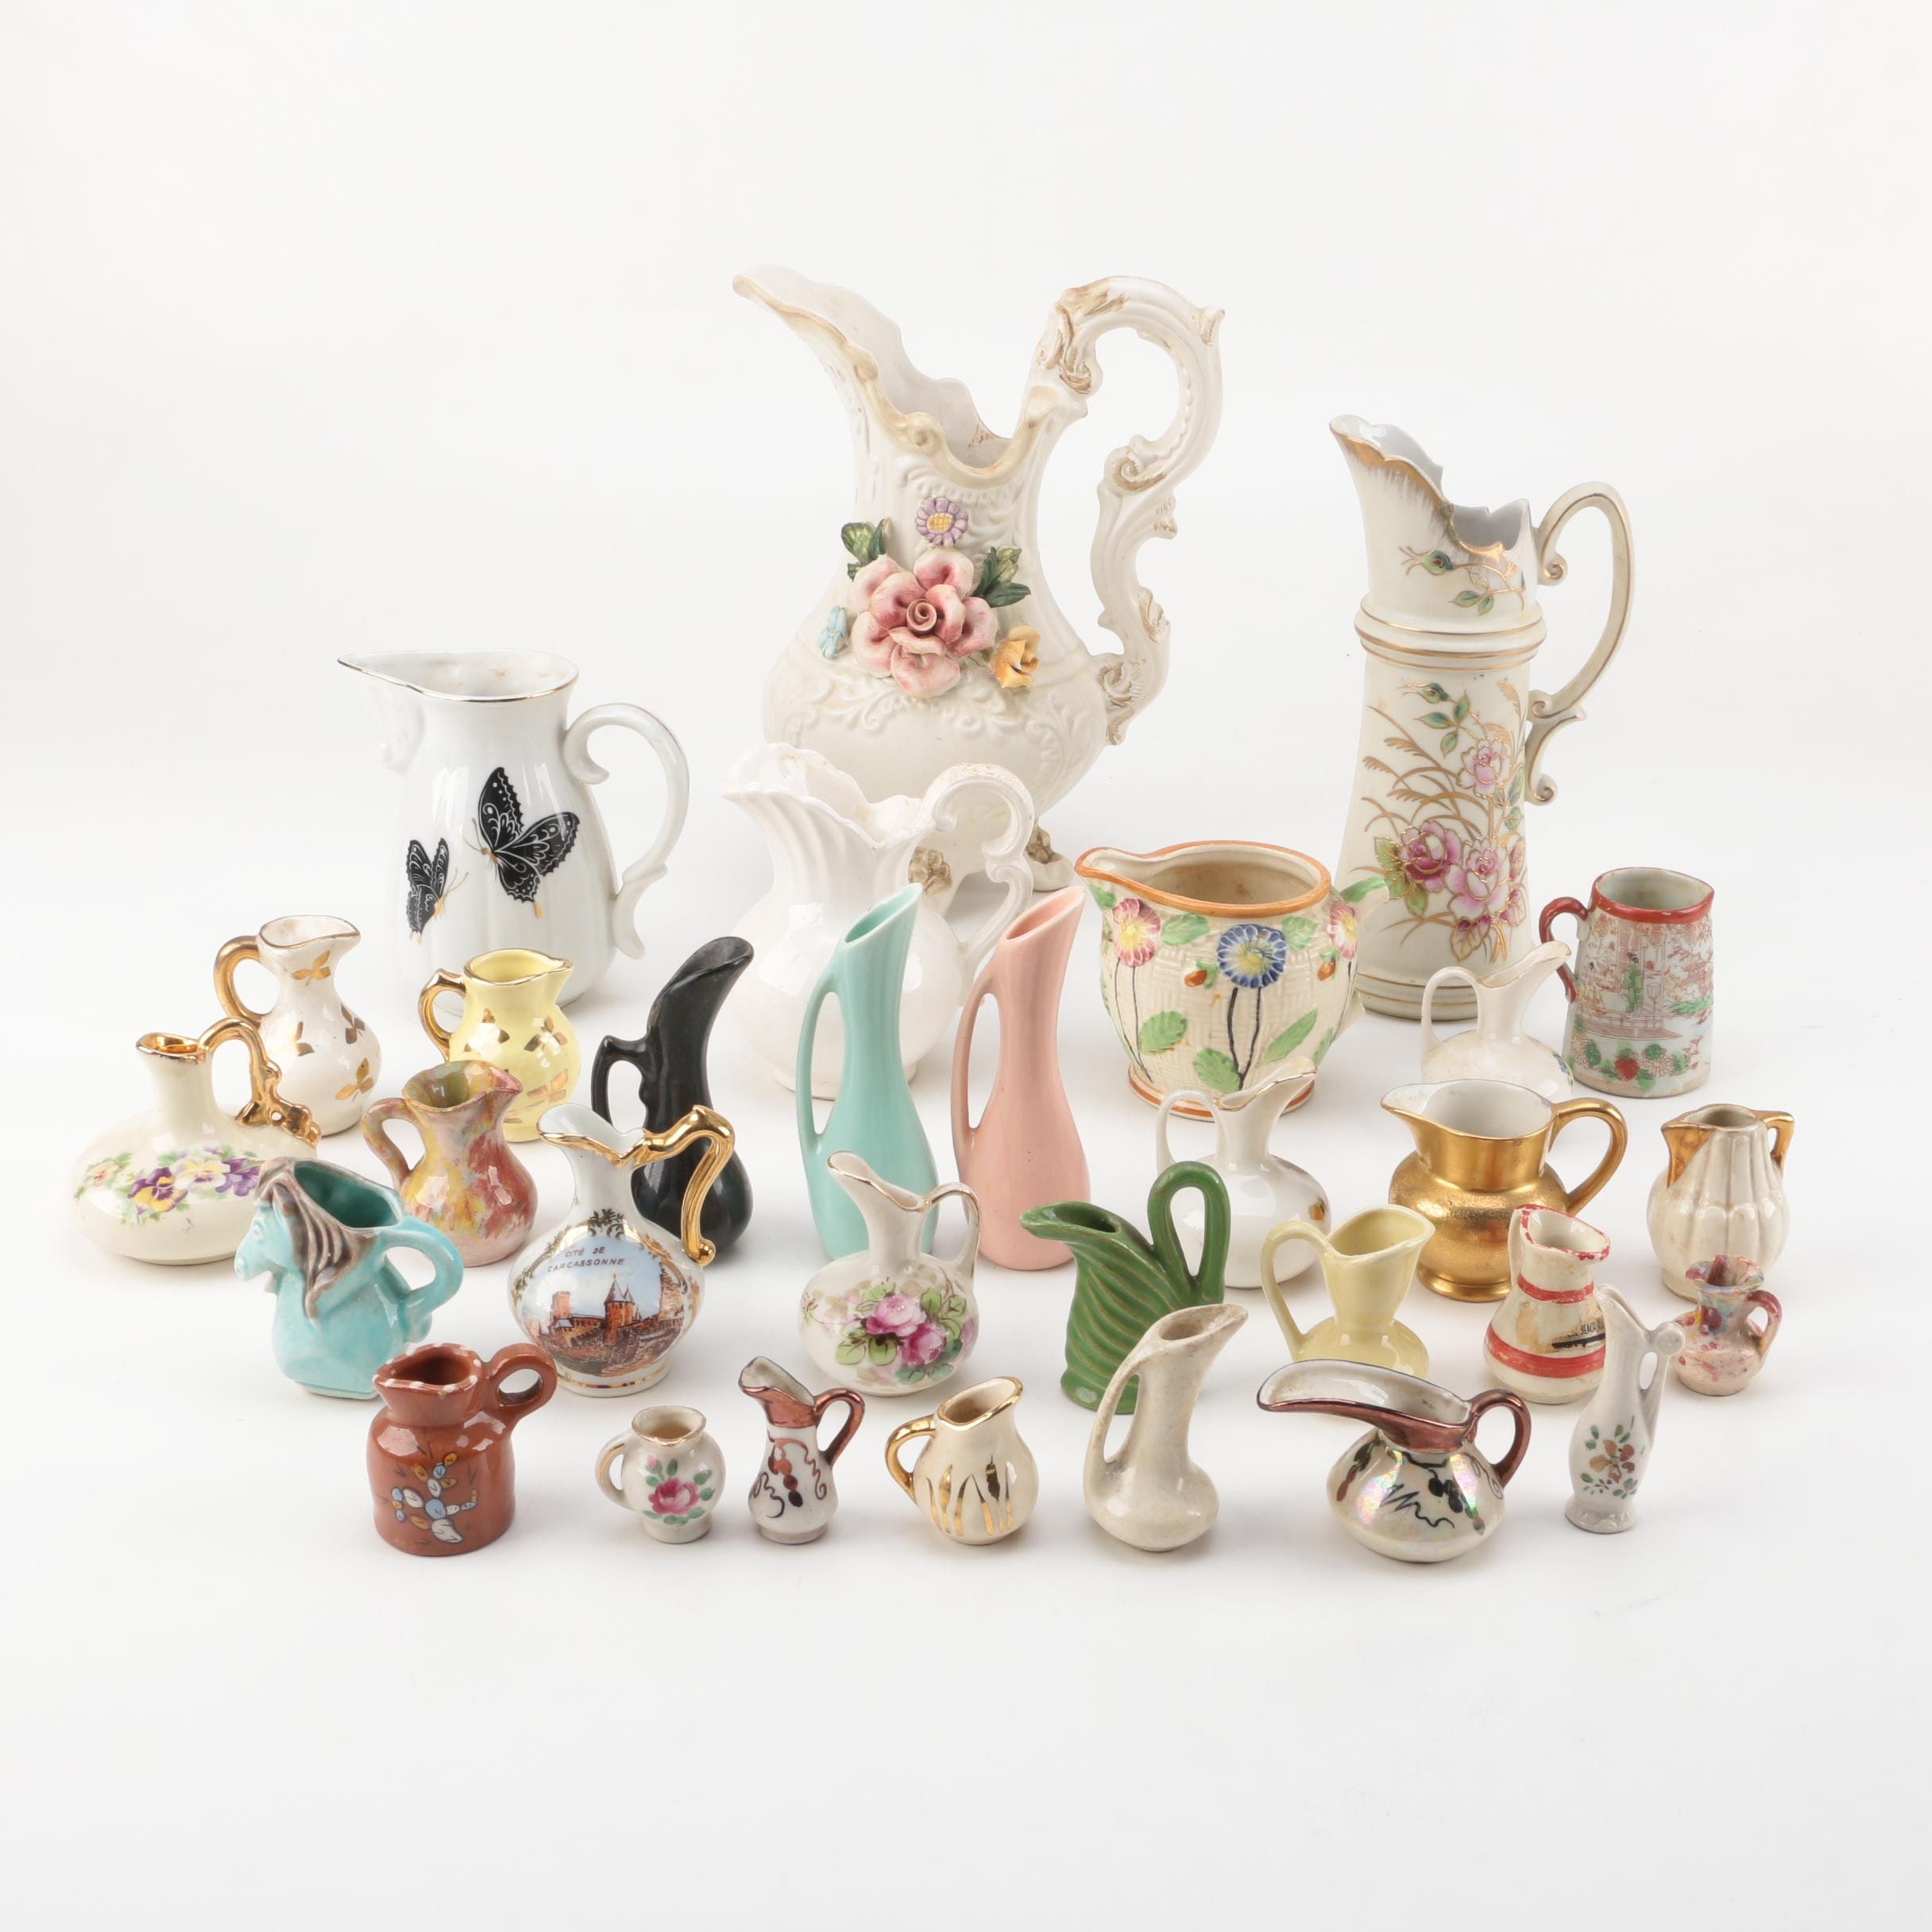 Vintage Jugs and Creamers Including Limoges and Pickard